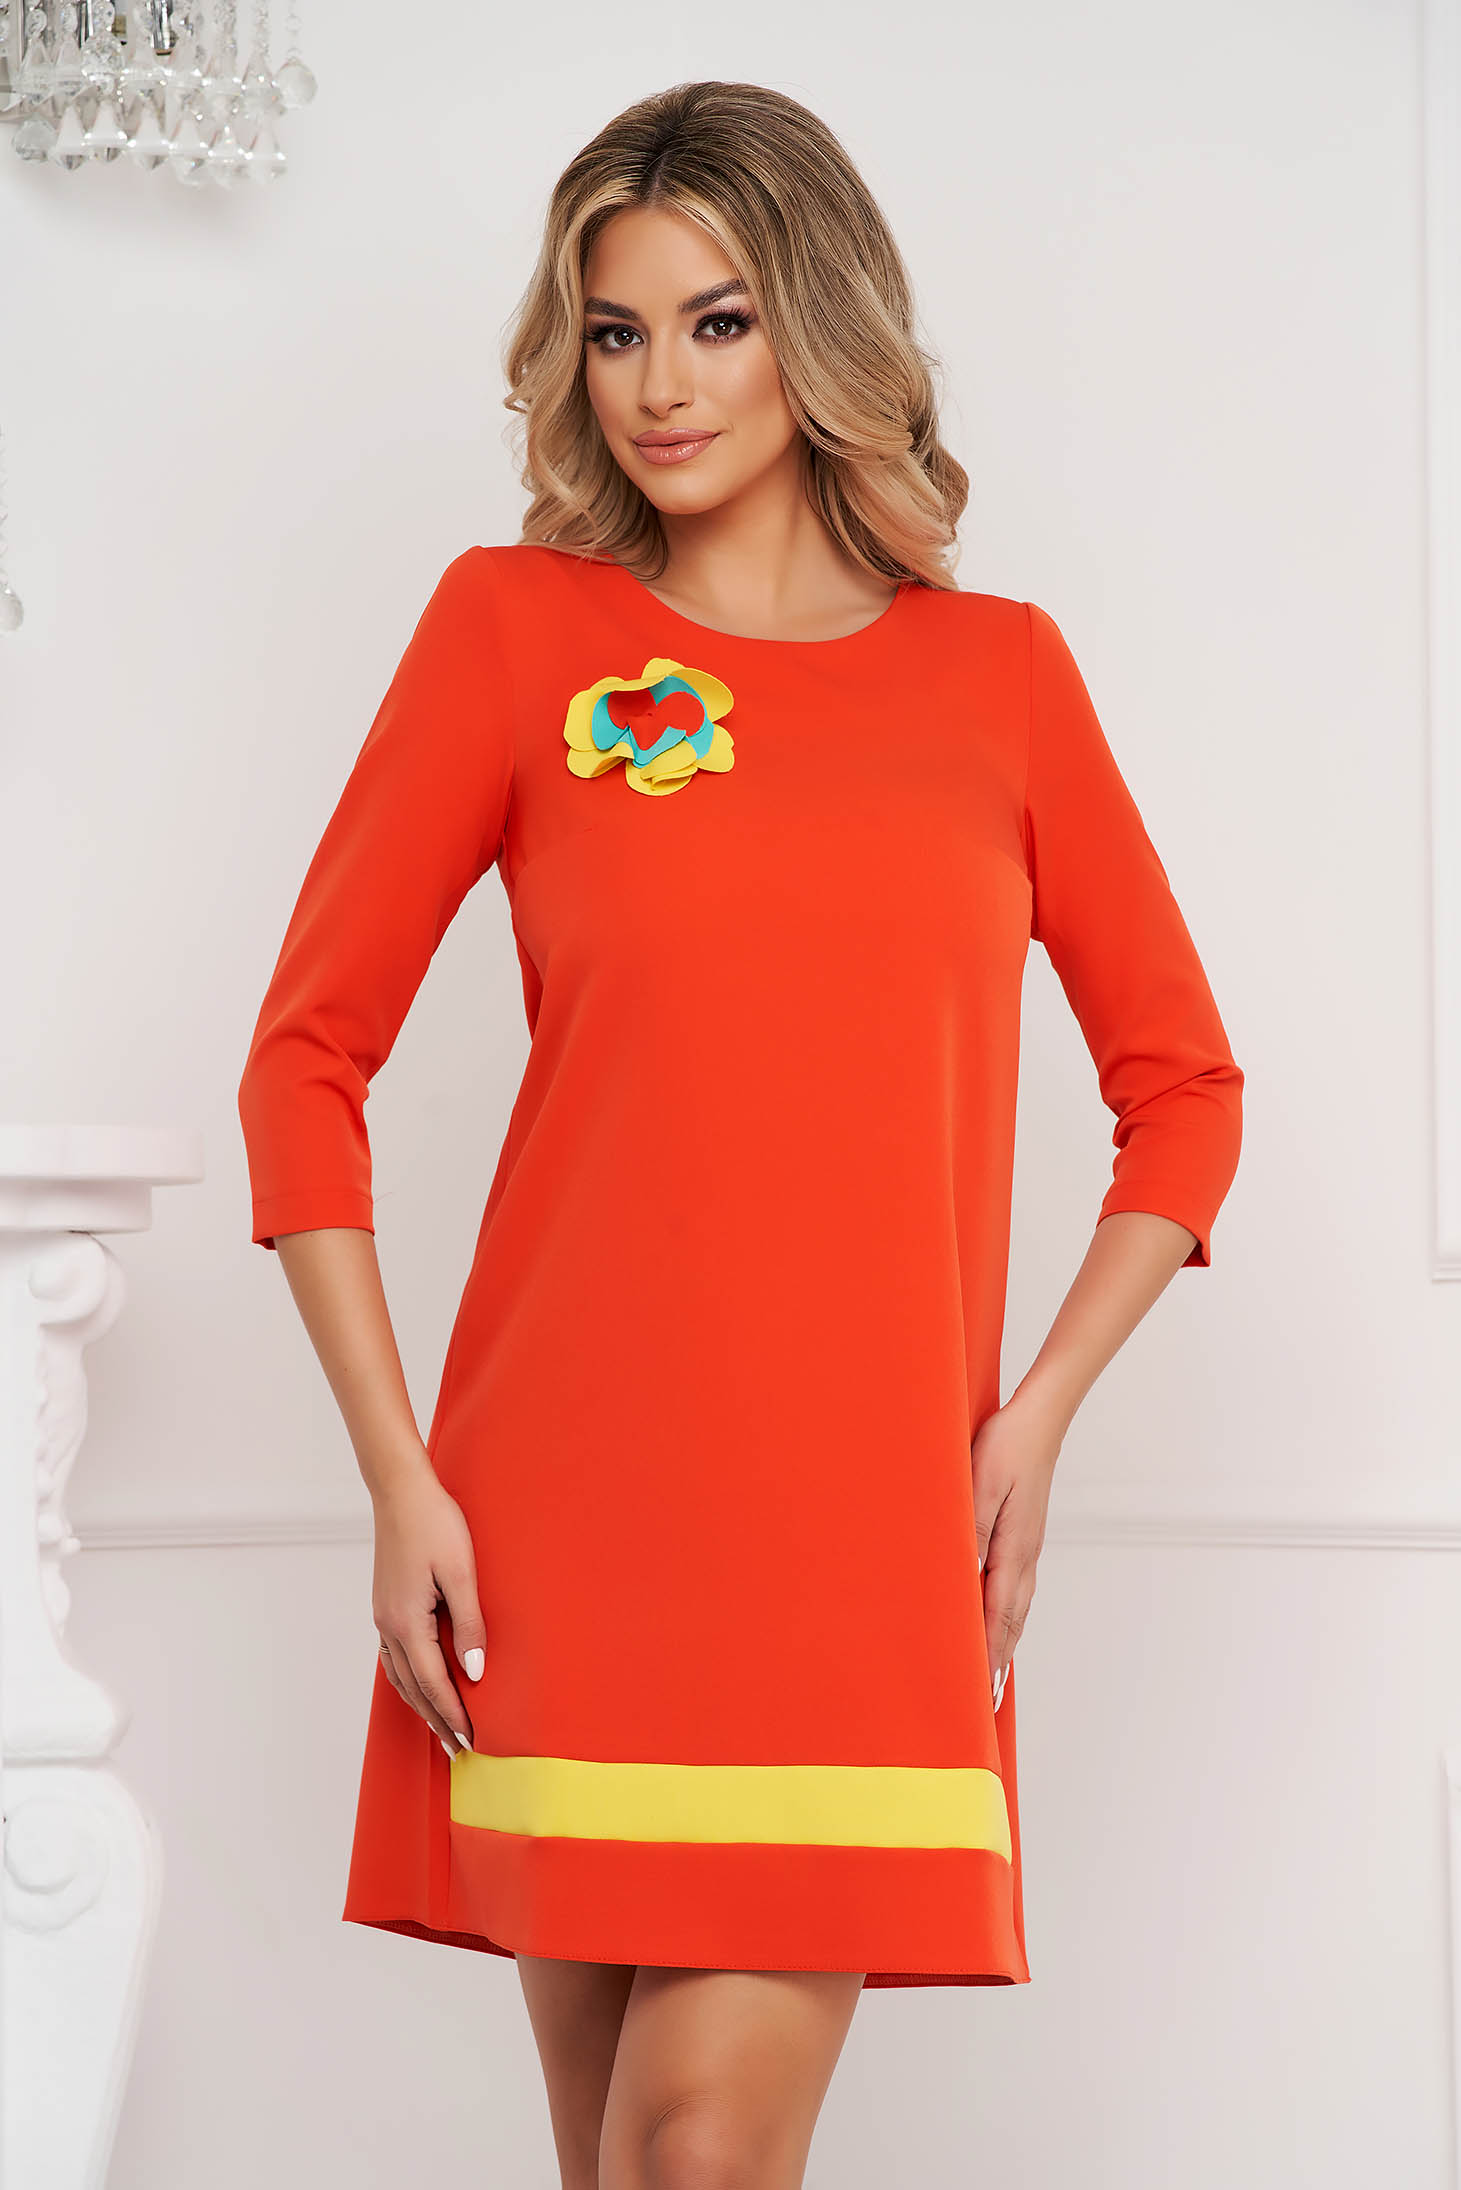 StarShinerS loose fit orange nonelastic fabric dress accessorized with breastpin